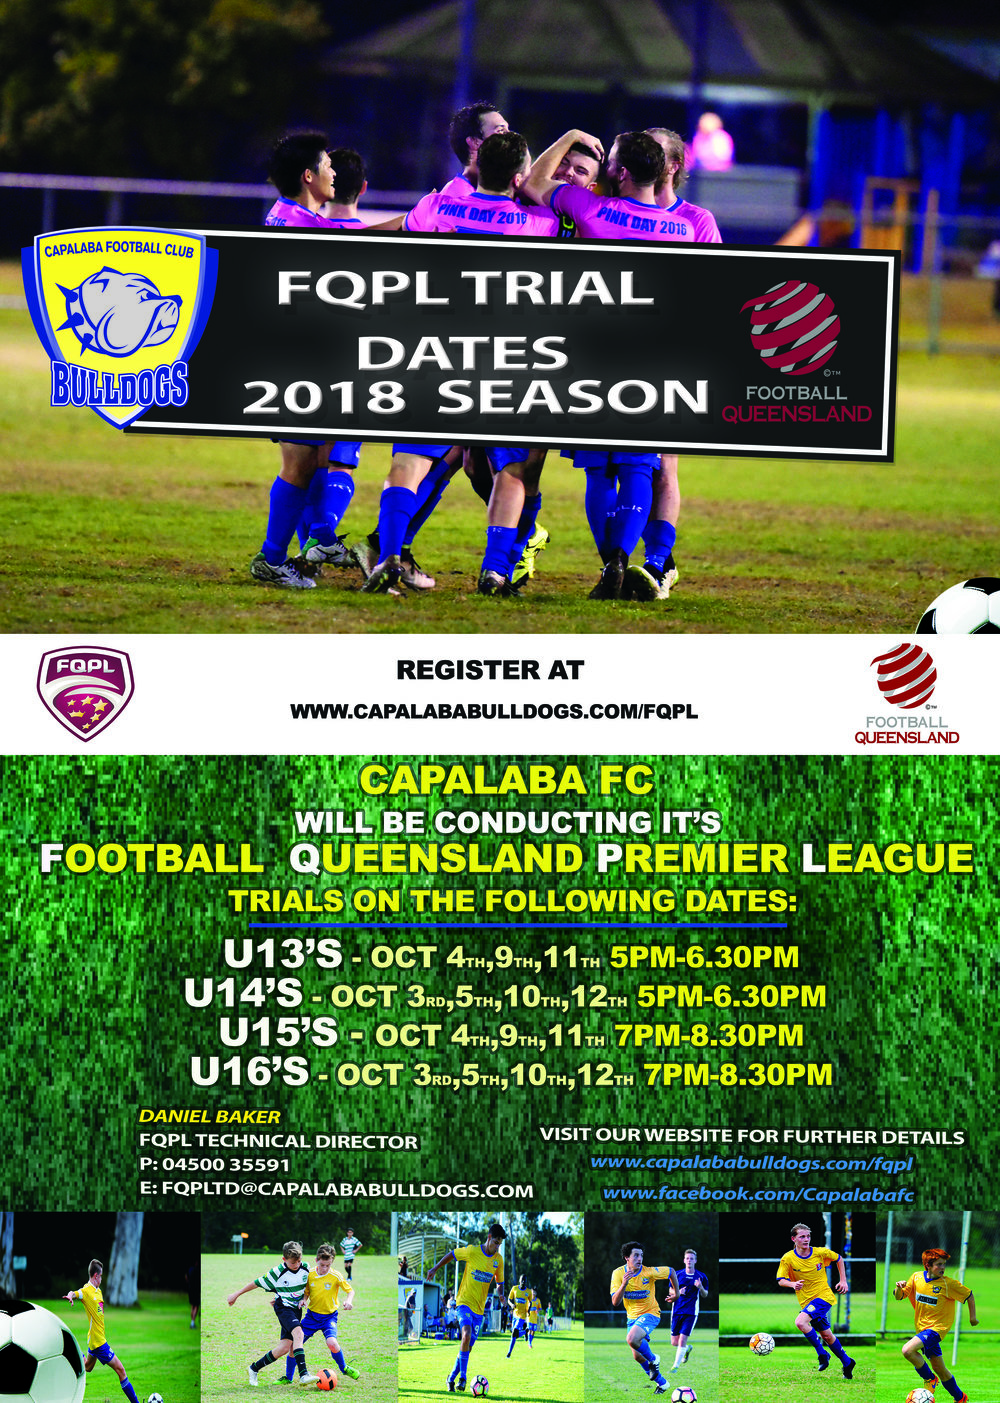 Capalaba FC FQPL Trial Dates 2017 Flyer 1.jpg